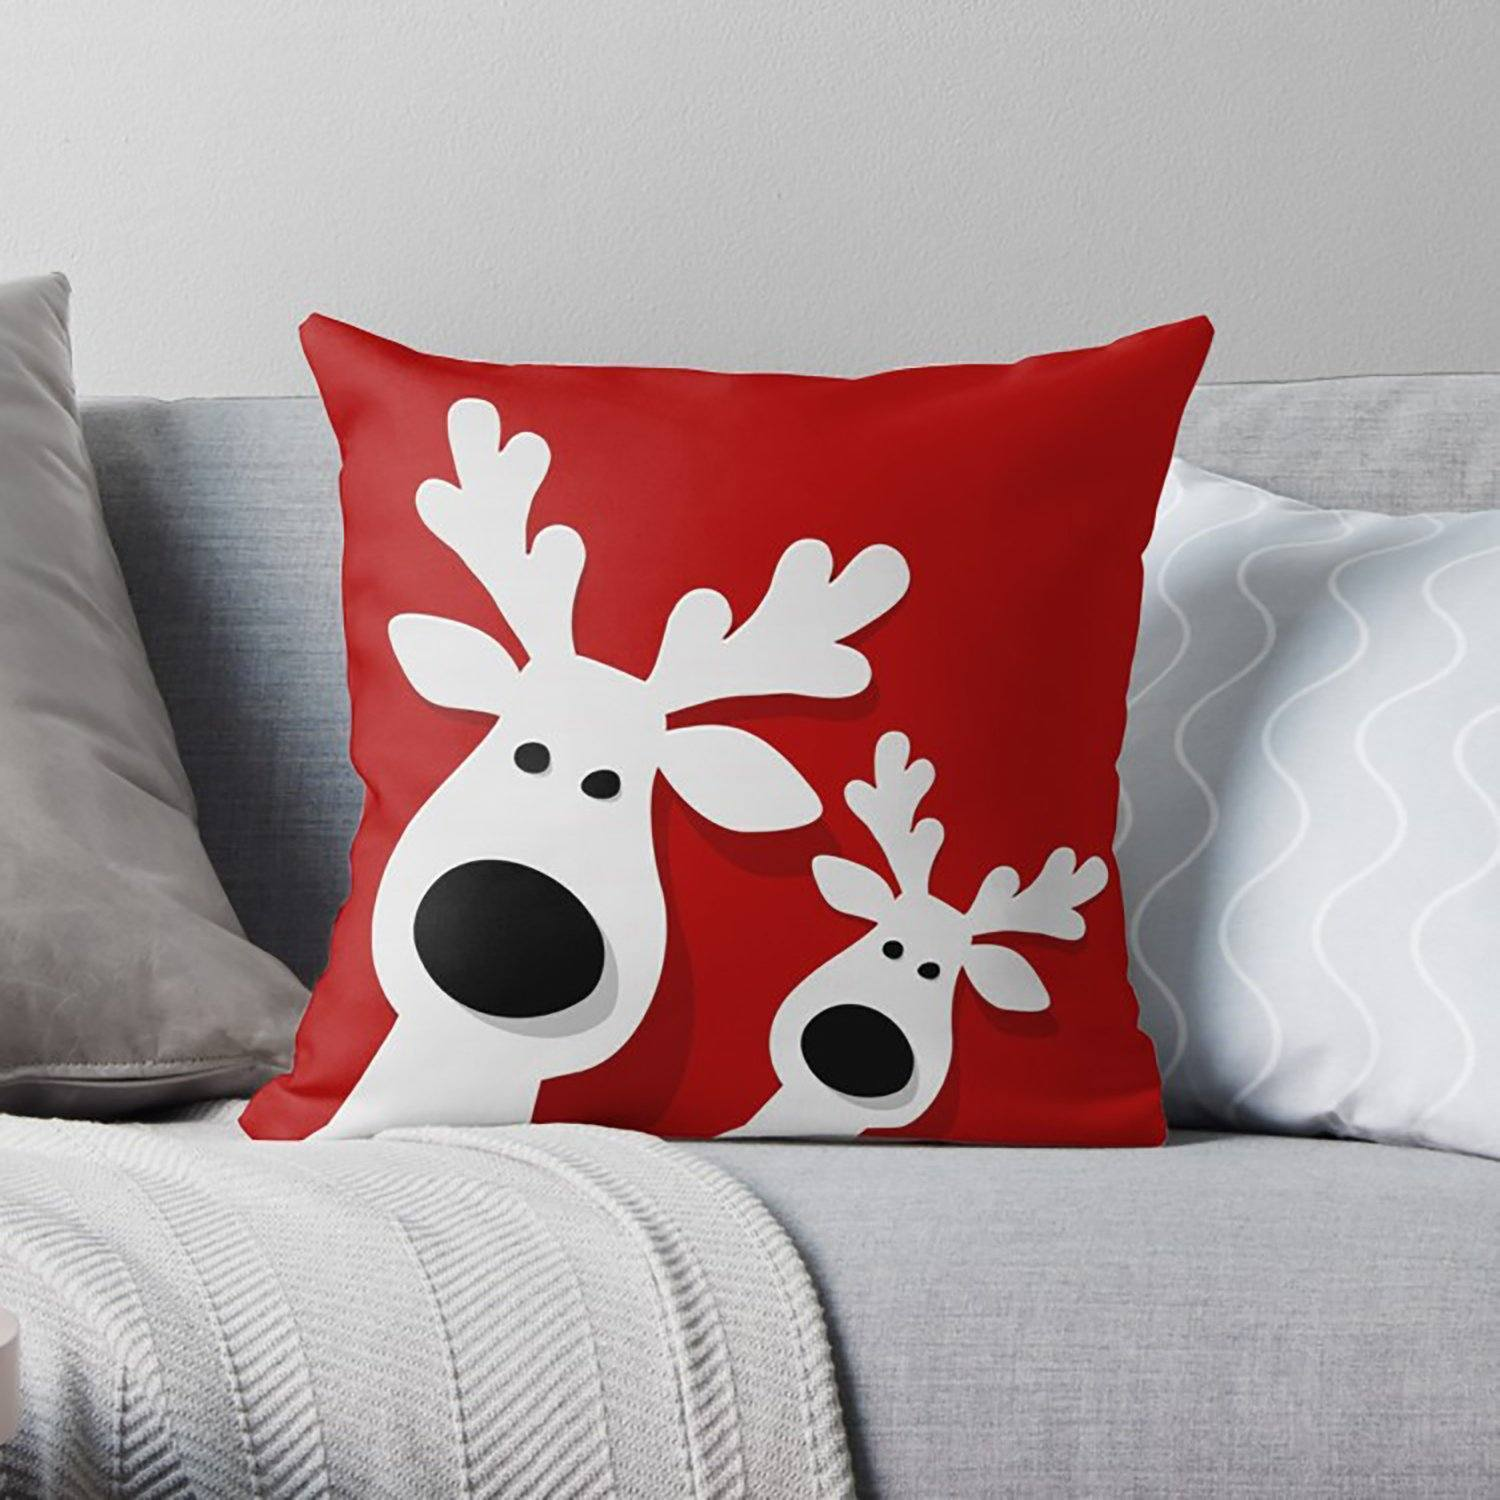 Christmas Pillow - Pillow Covers - W.FRANCIS